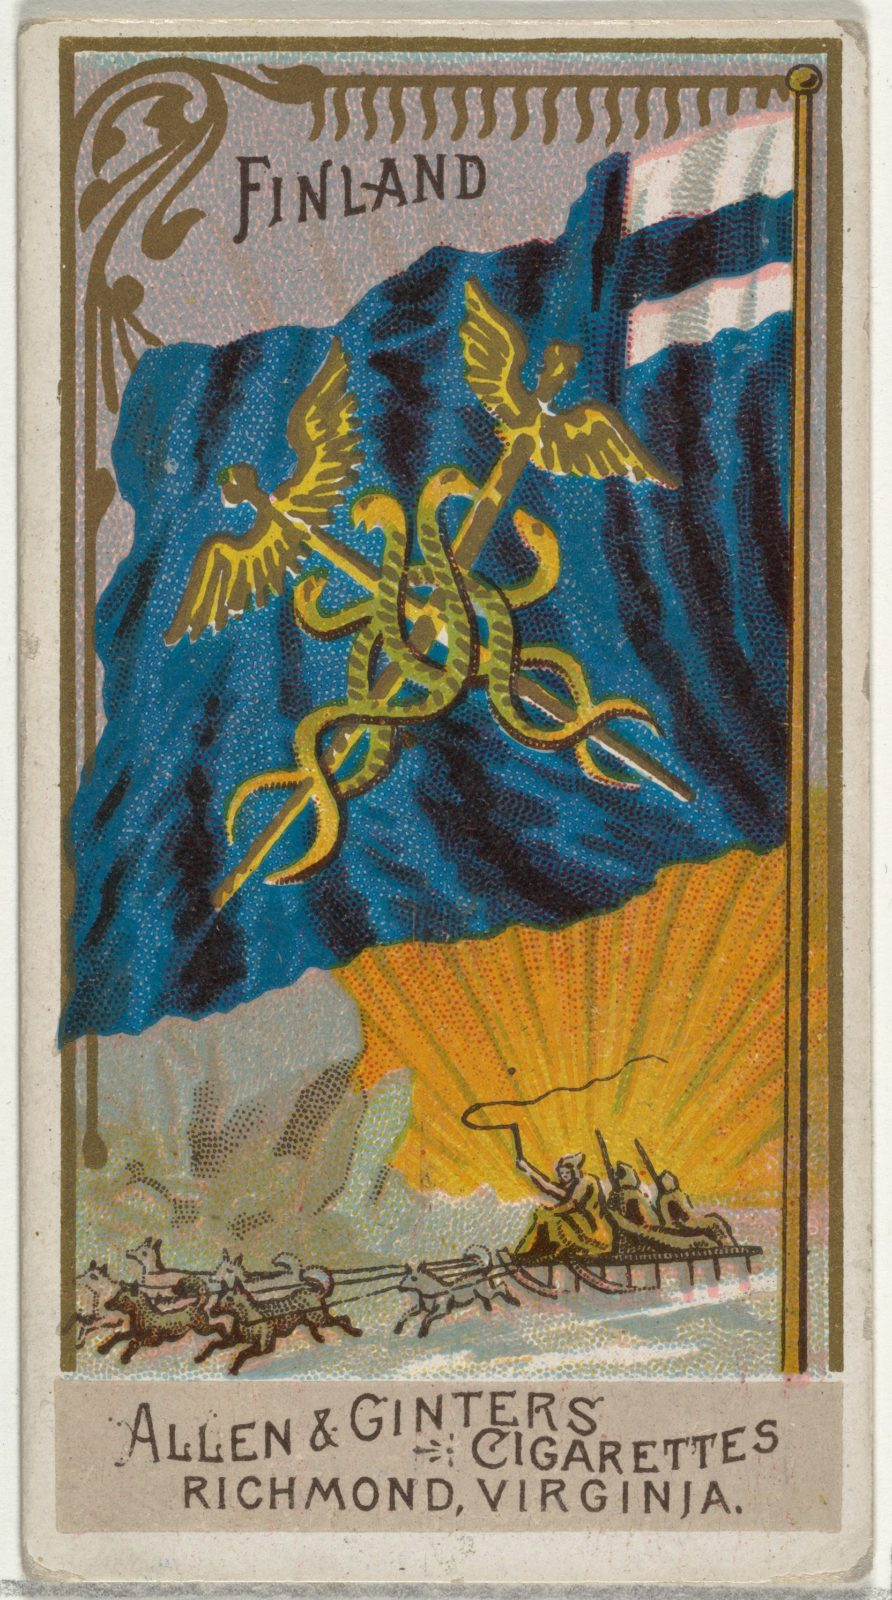 Finland, from Flags of All Nations, Series 2 (N10) for Allen & Ginter Cigarettes Brands